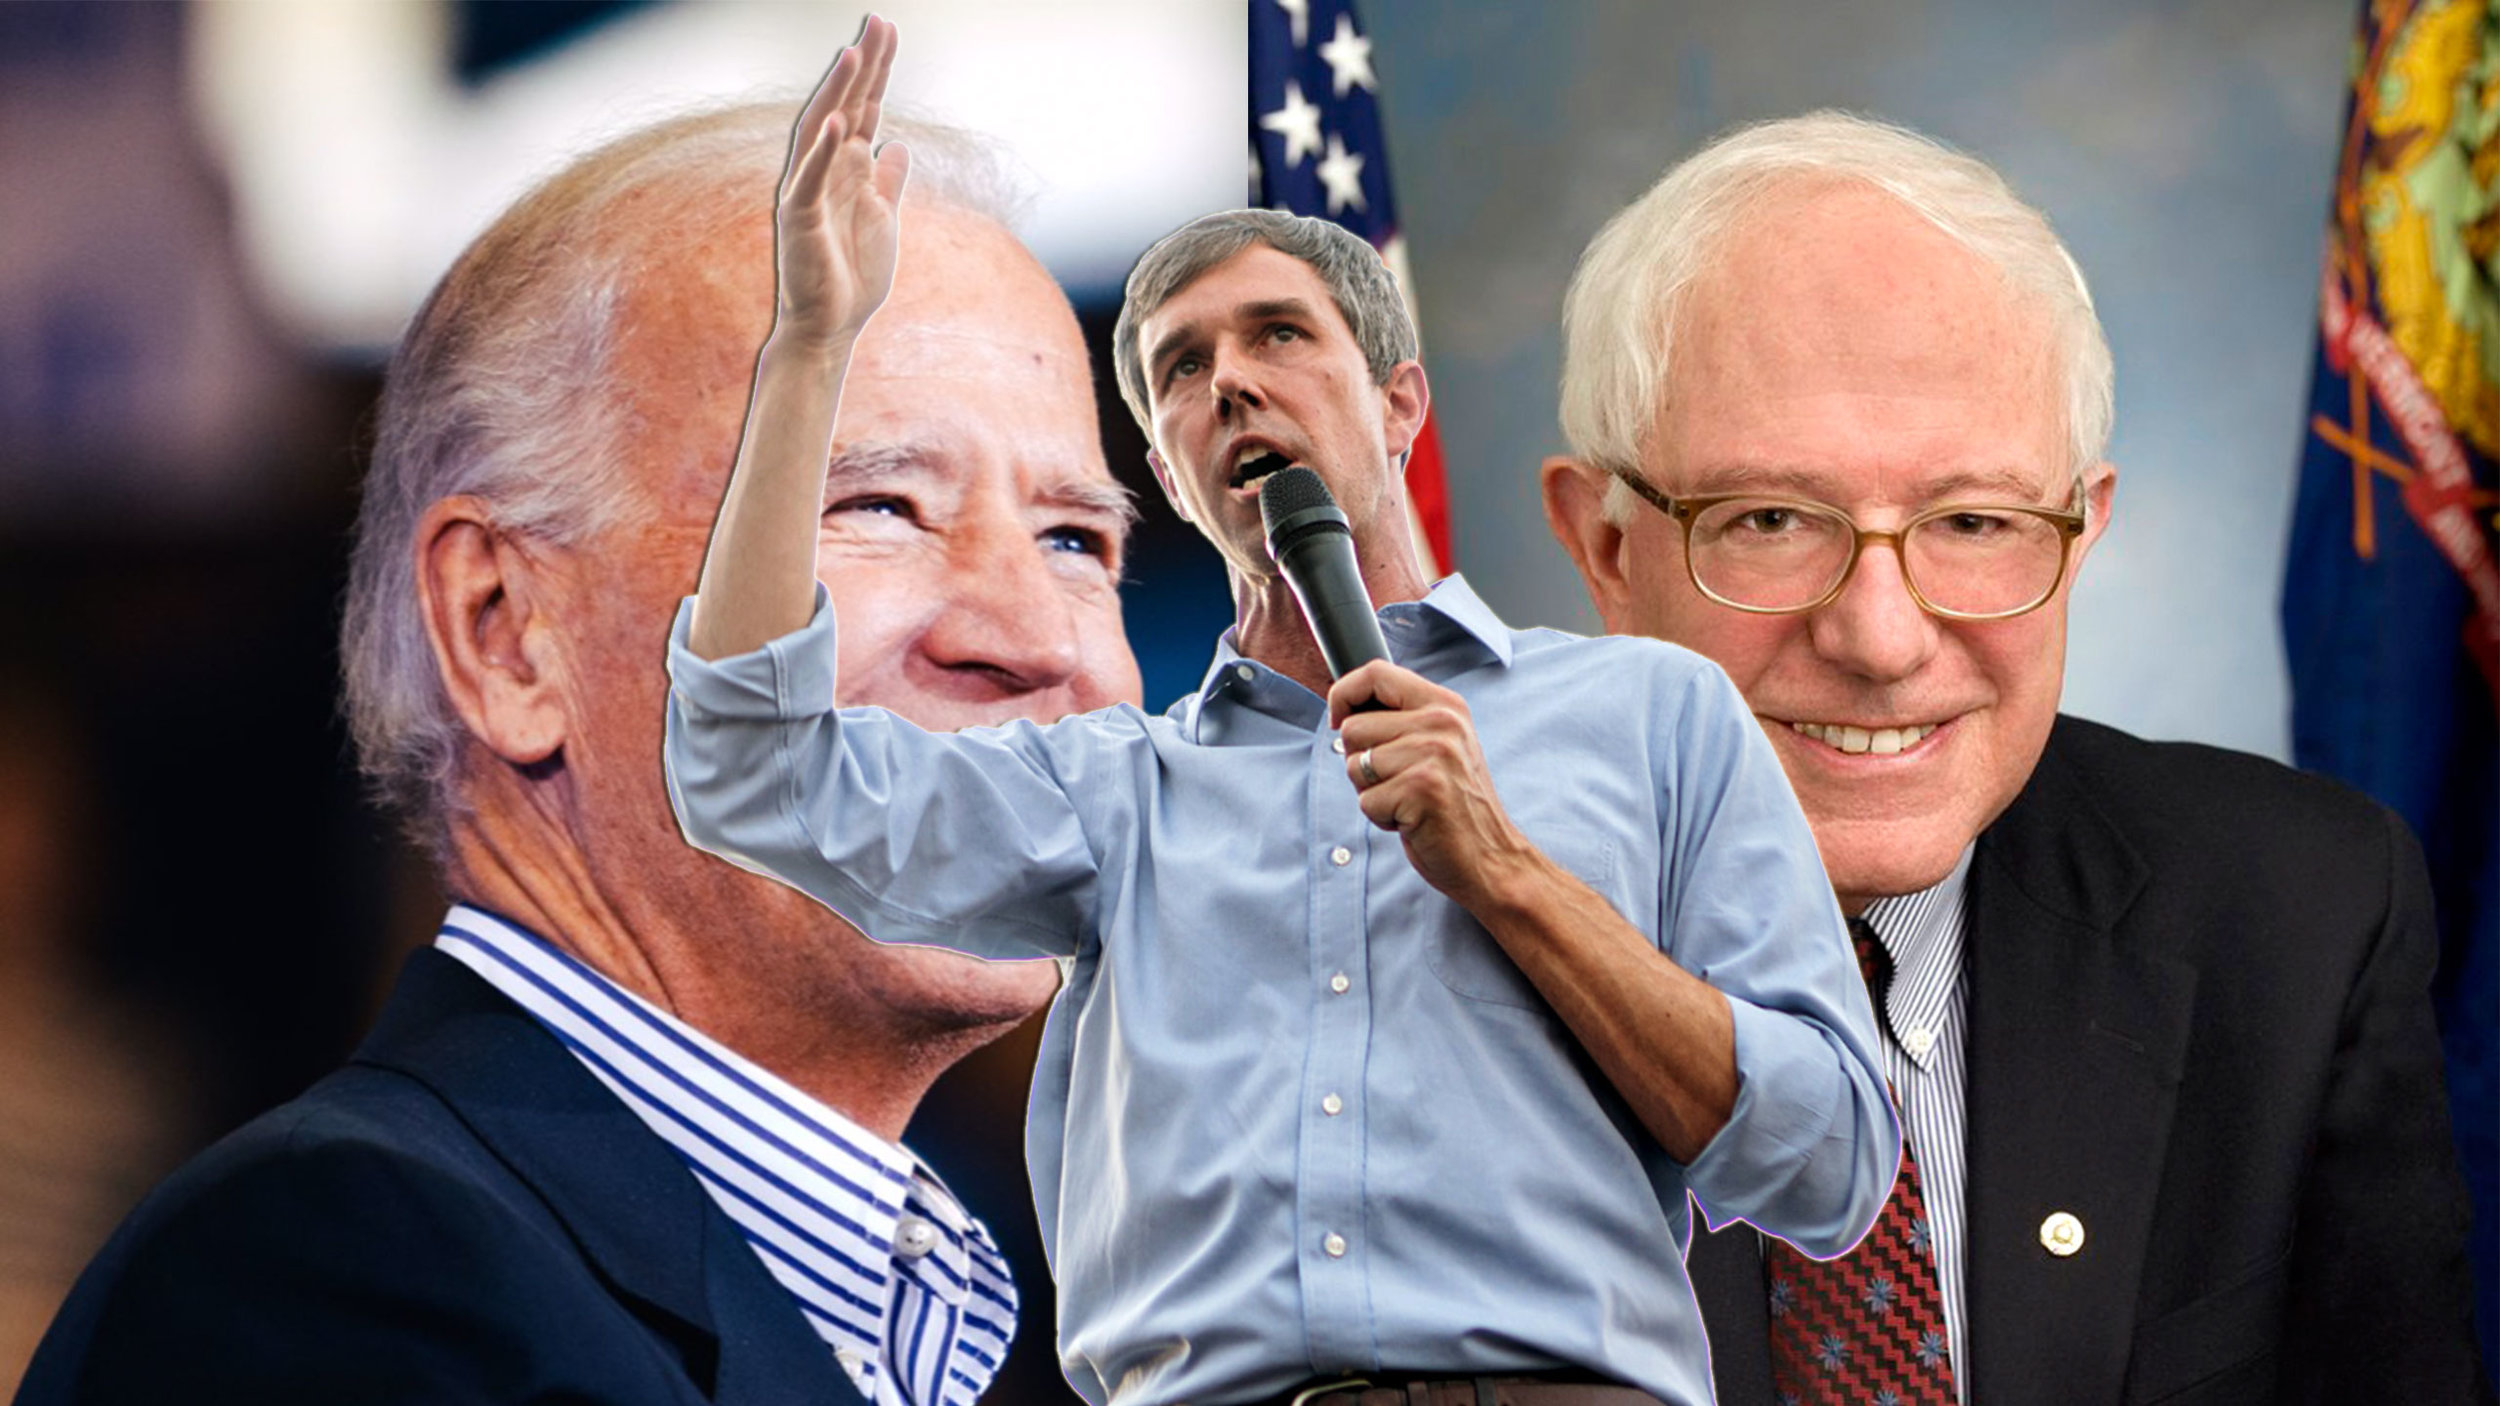 Biden, Beto, and Bernie…